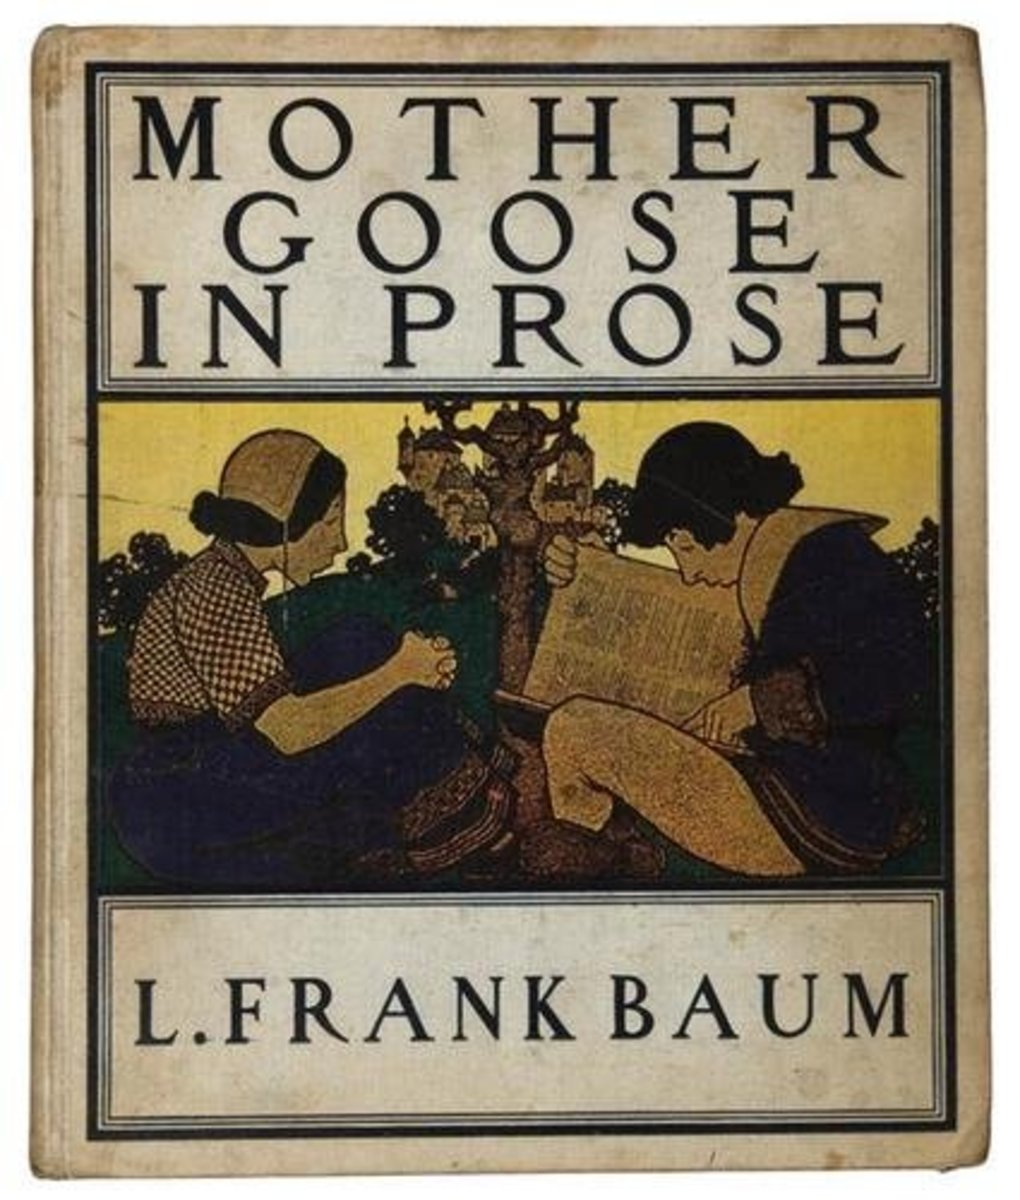 L Frank Baum's Mother Goose in Prose